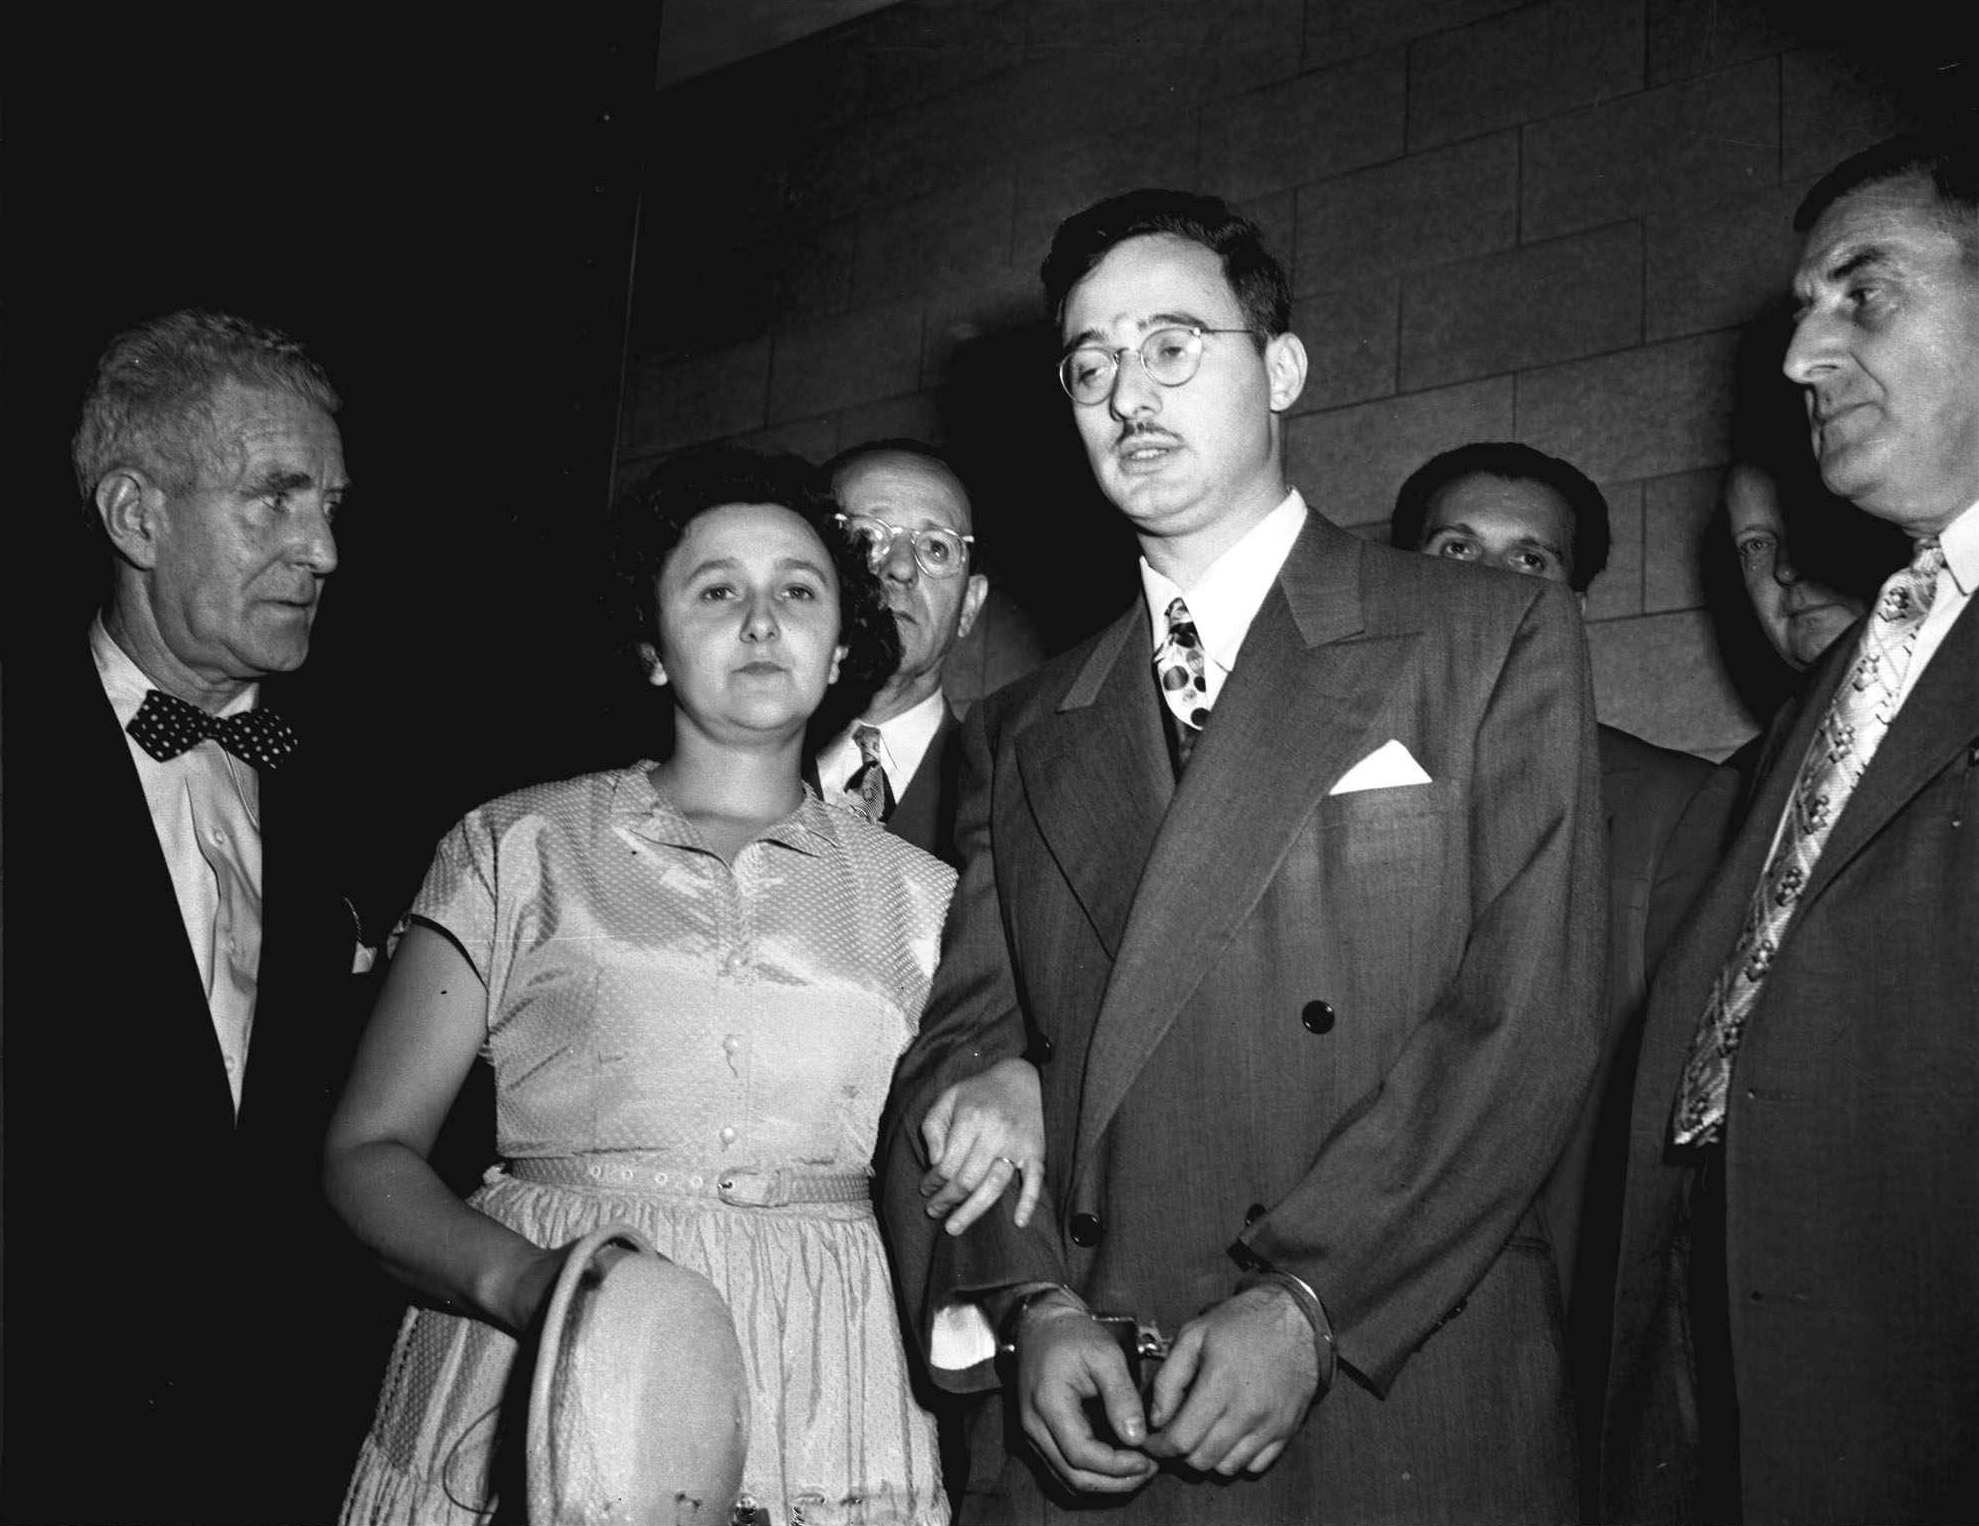 Ethel and Julius Rosenberg, center, are shown during their trial for espionage in New York in 1951. (AP Photo, File)